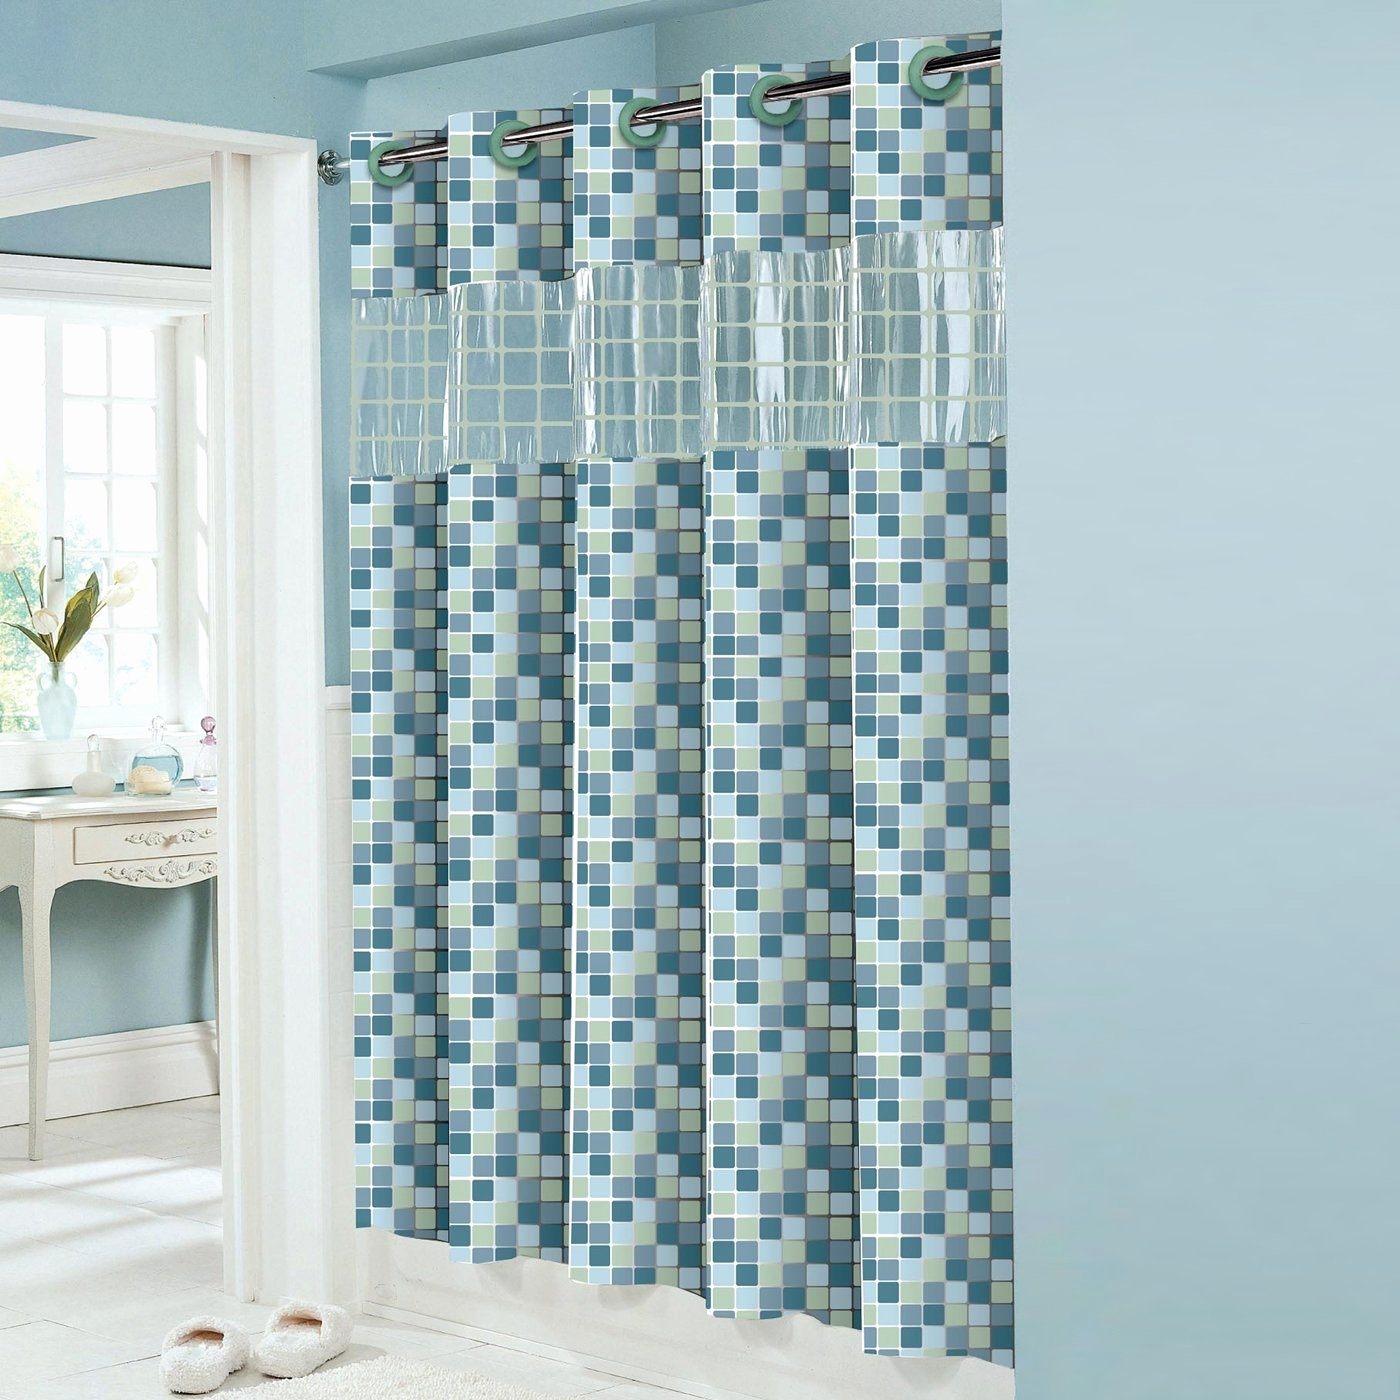 Standard Shower Curtain Liner Length • Shower Curtains Ideas